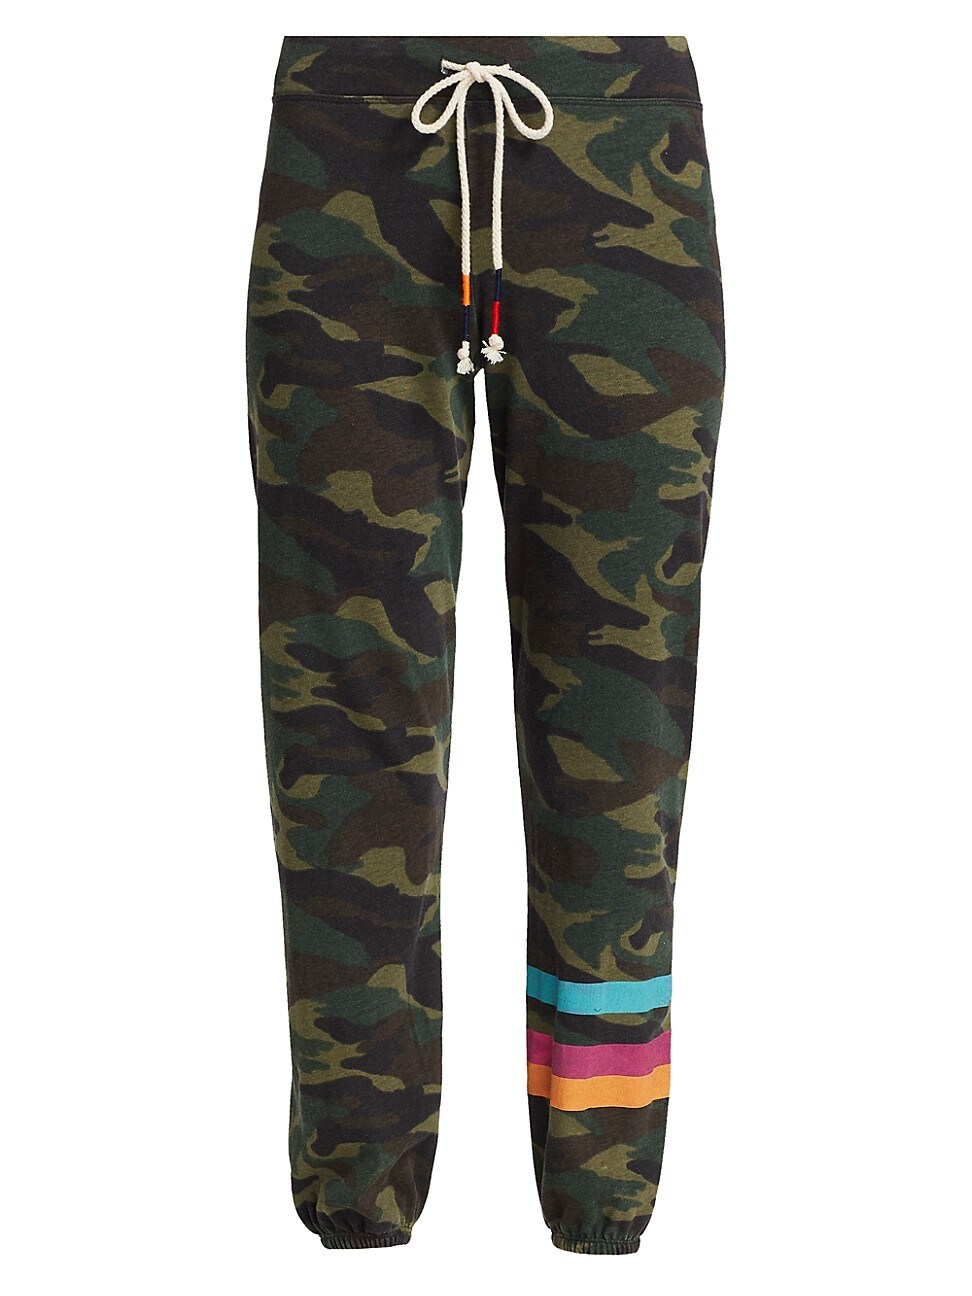 Sundry WOMEN'S STRIPES CAMO PANTS